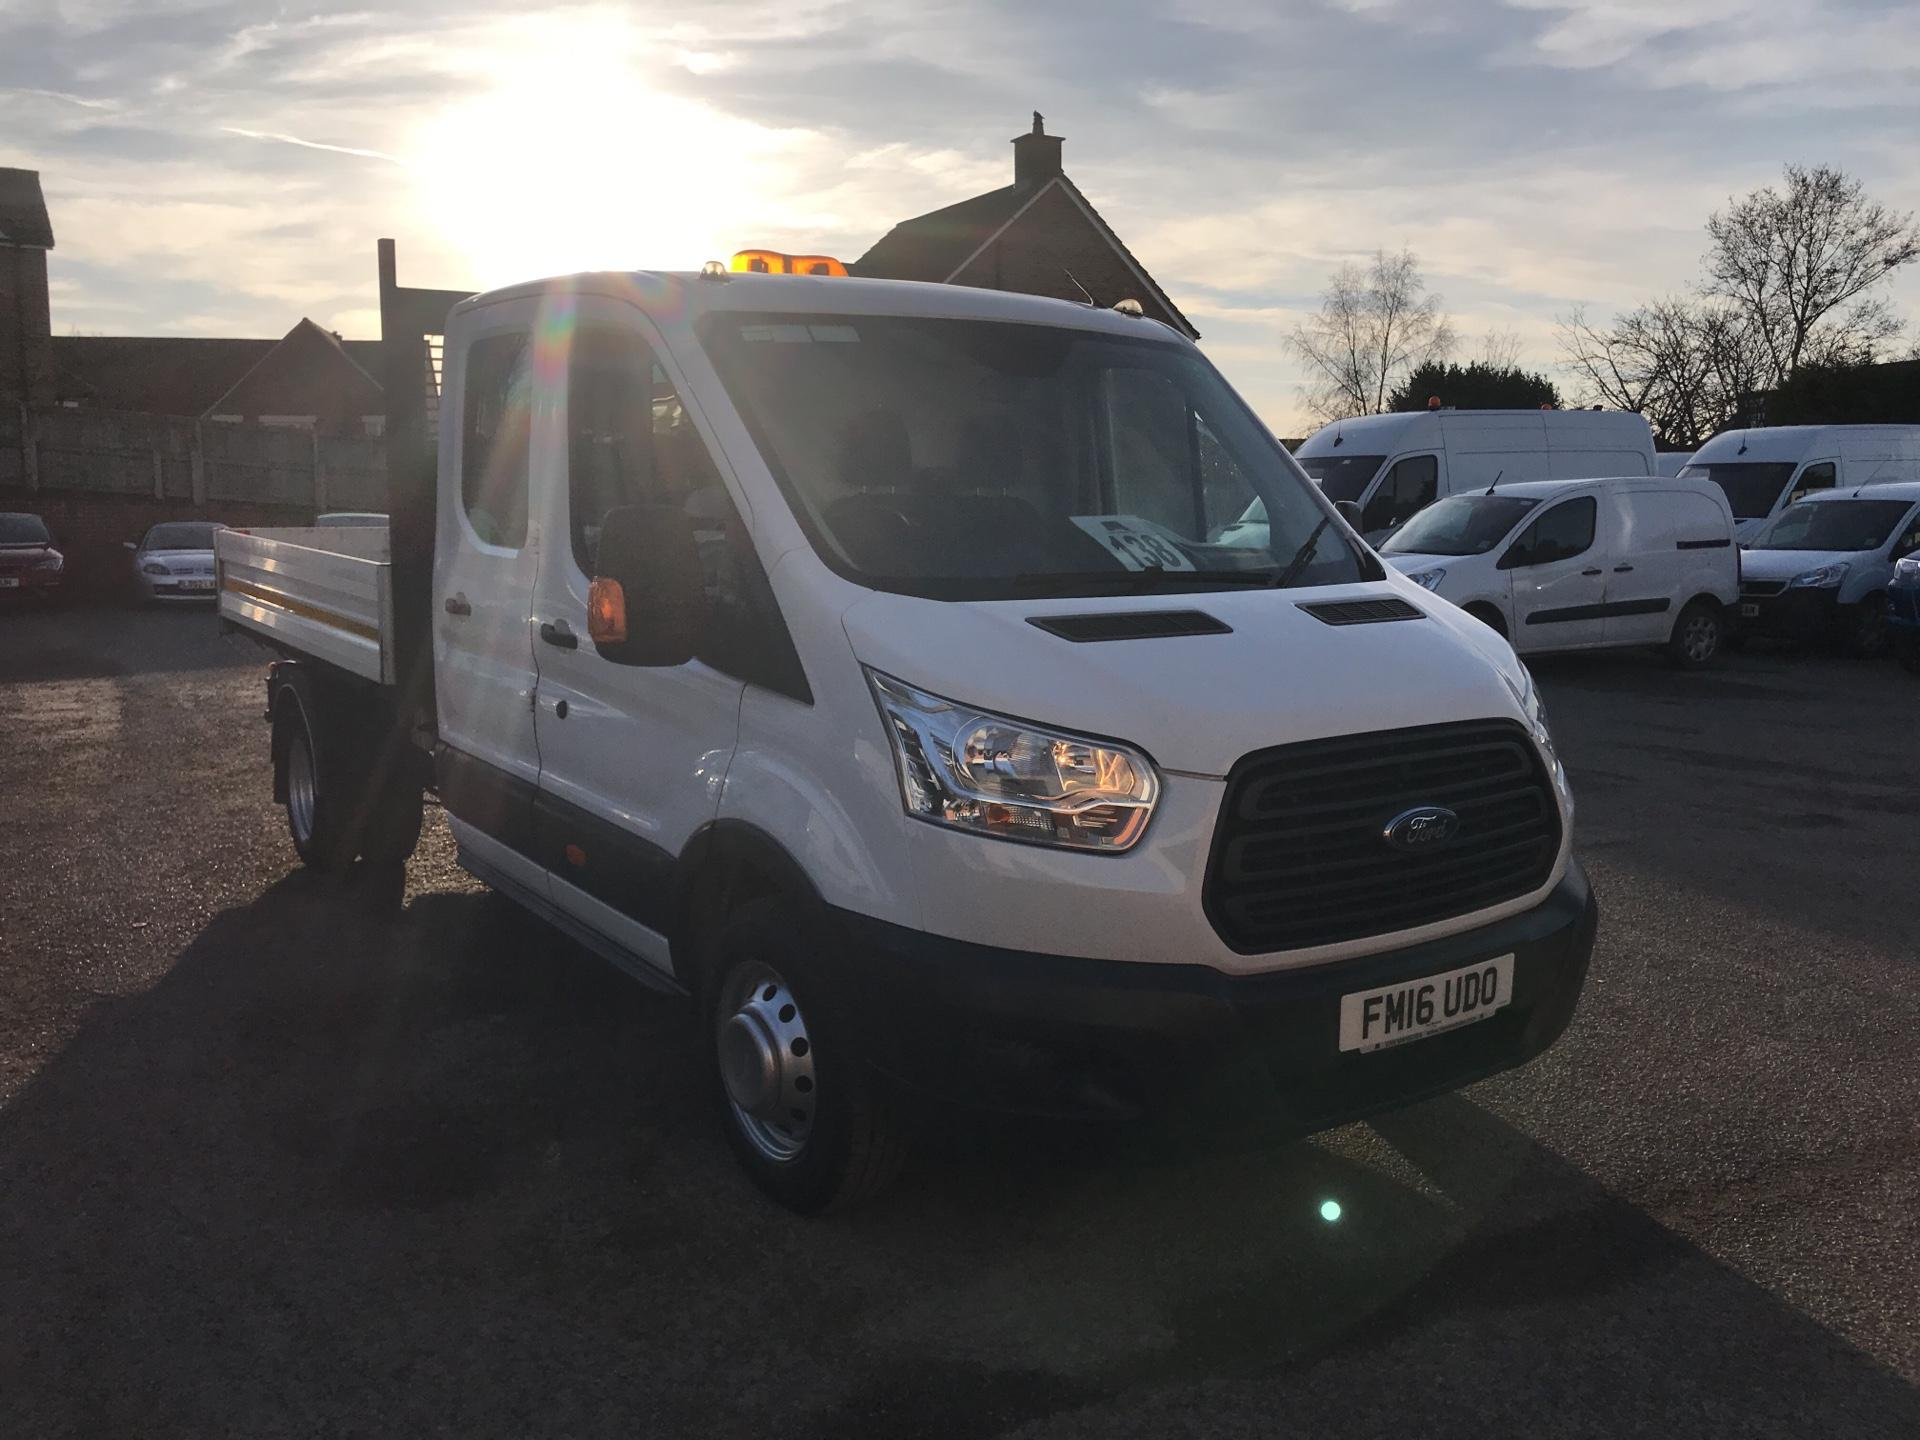 2016 Ford Transit 350 L3 DOUBLE CAB TIPPER 125PS EURO 5 *NO REAR SEATS* (FM16UDO)